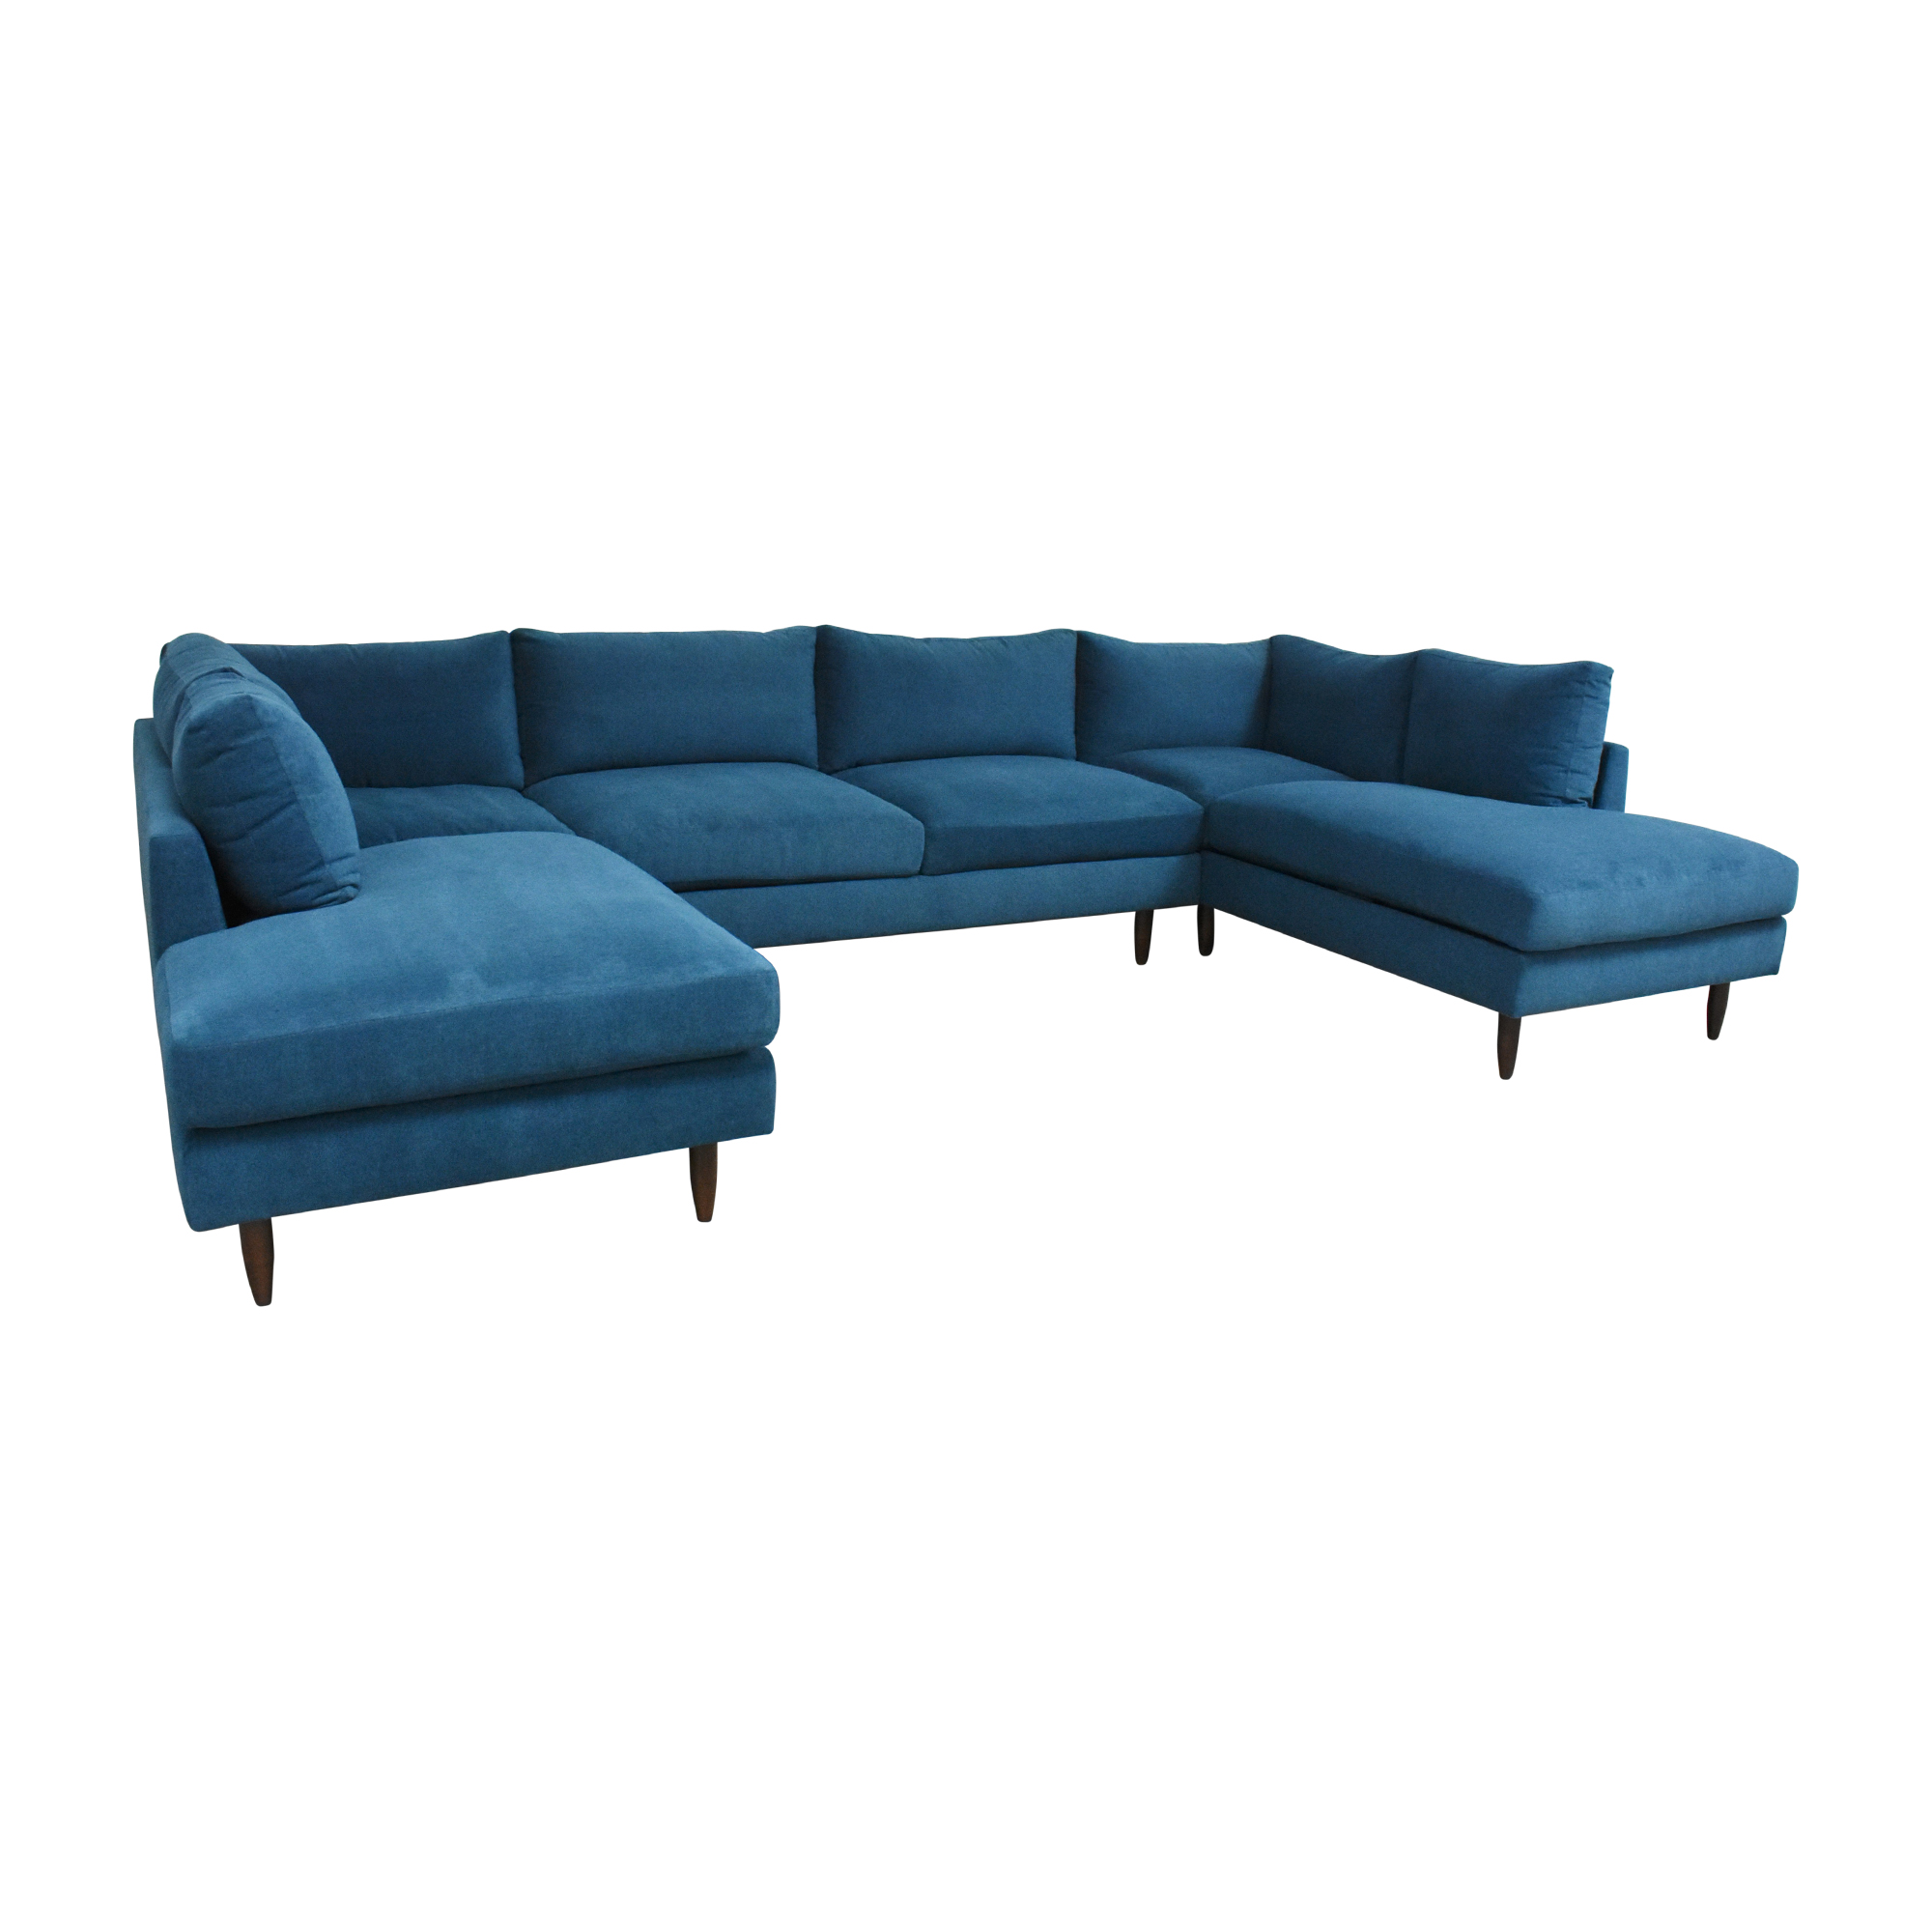 shop BenchMade Modern Crowd Pleaser Double Chaise Sectional U Sofa BenchMade Modern Sectionals